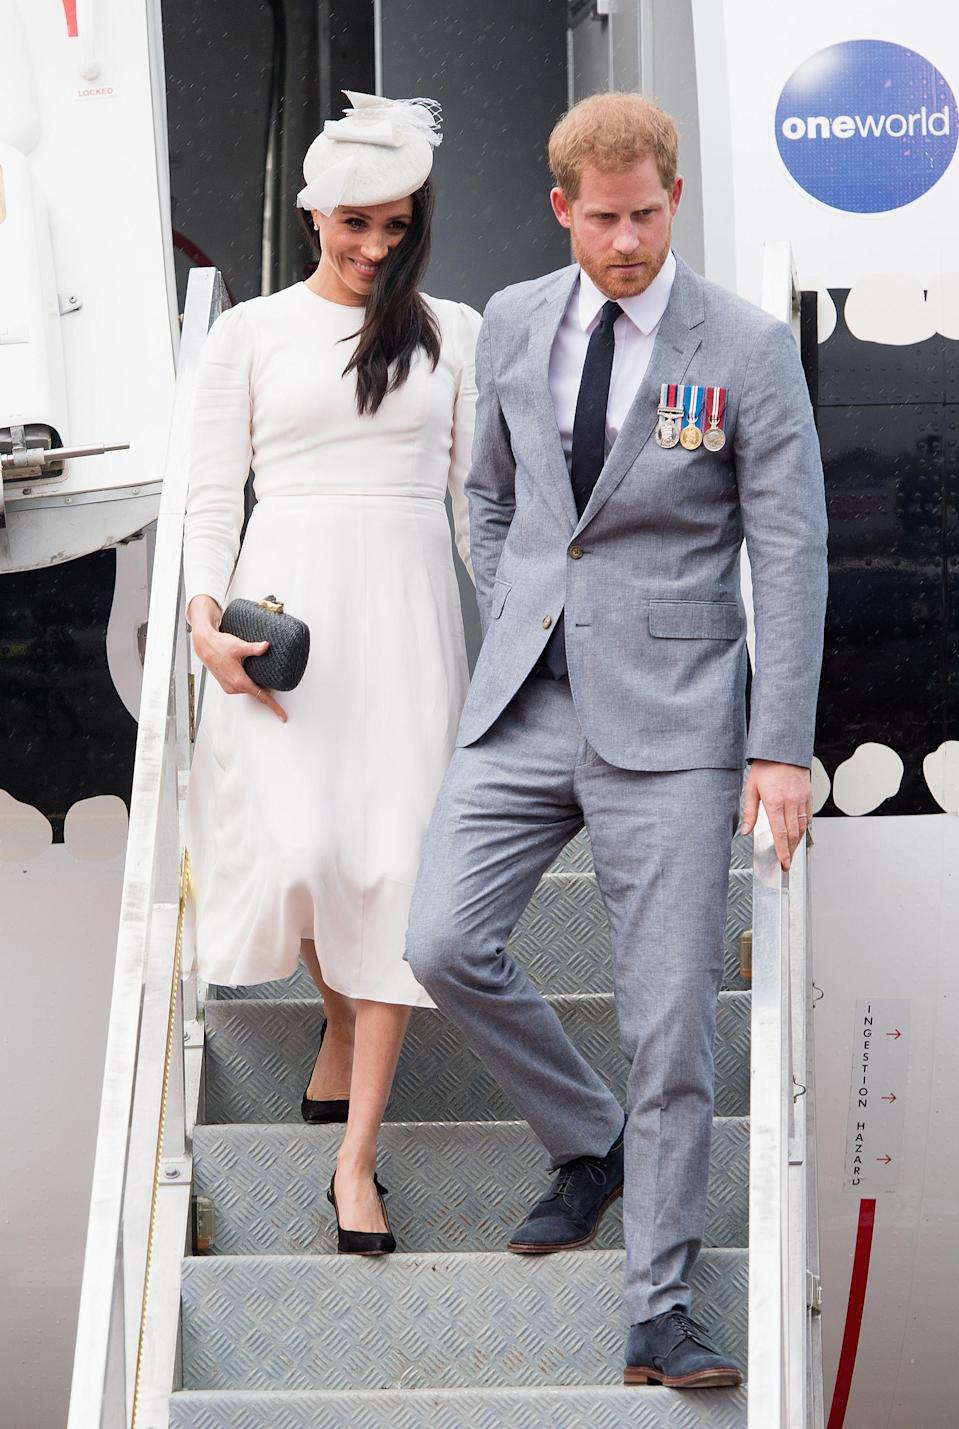 <p>The Duchess of Sussex touched down at Nausori Airport on October 23 in a bespoke cream-hued dress by Aussie label Zimmerman with a co-ordinating hat by Stephen Jones. But it was her jewellery that hit headlines: The Duchess paired earrings from the Queen with a bracelet from Prince Charles. <em>[Photo: Getty]</em> </p>